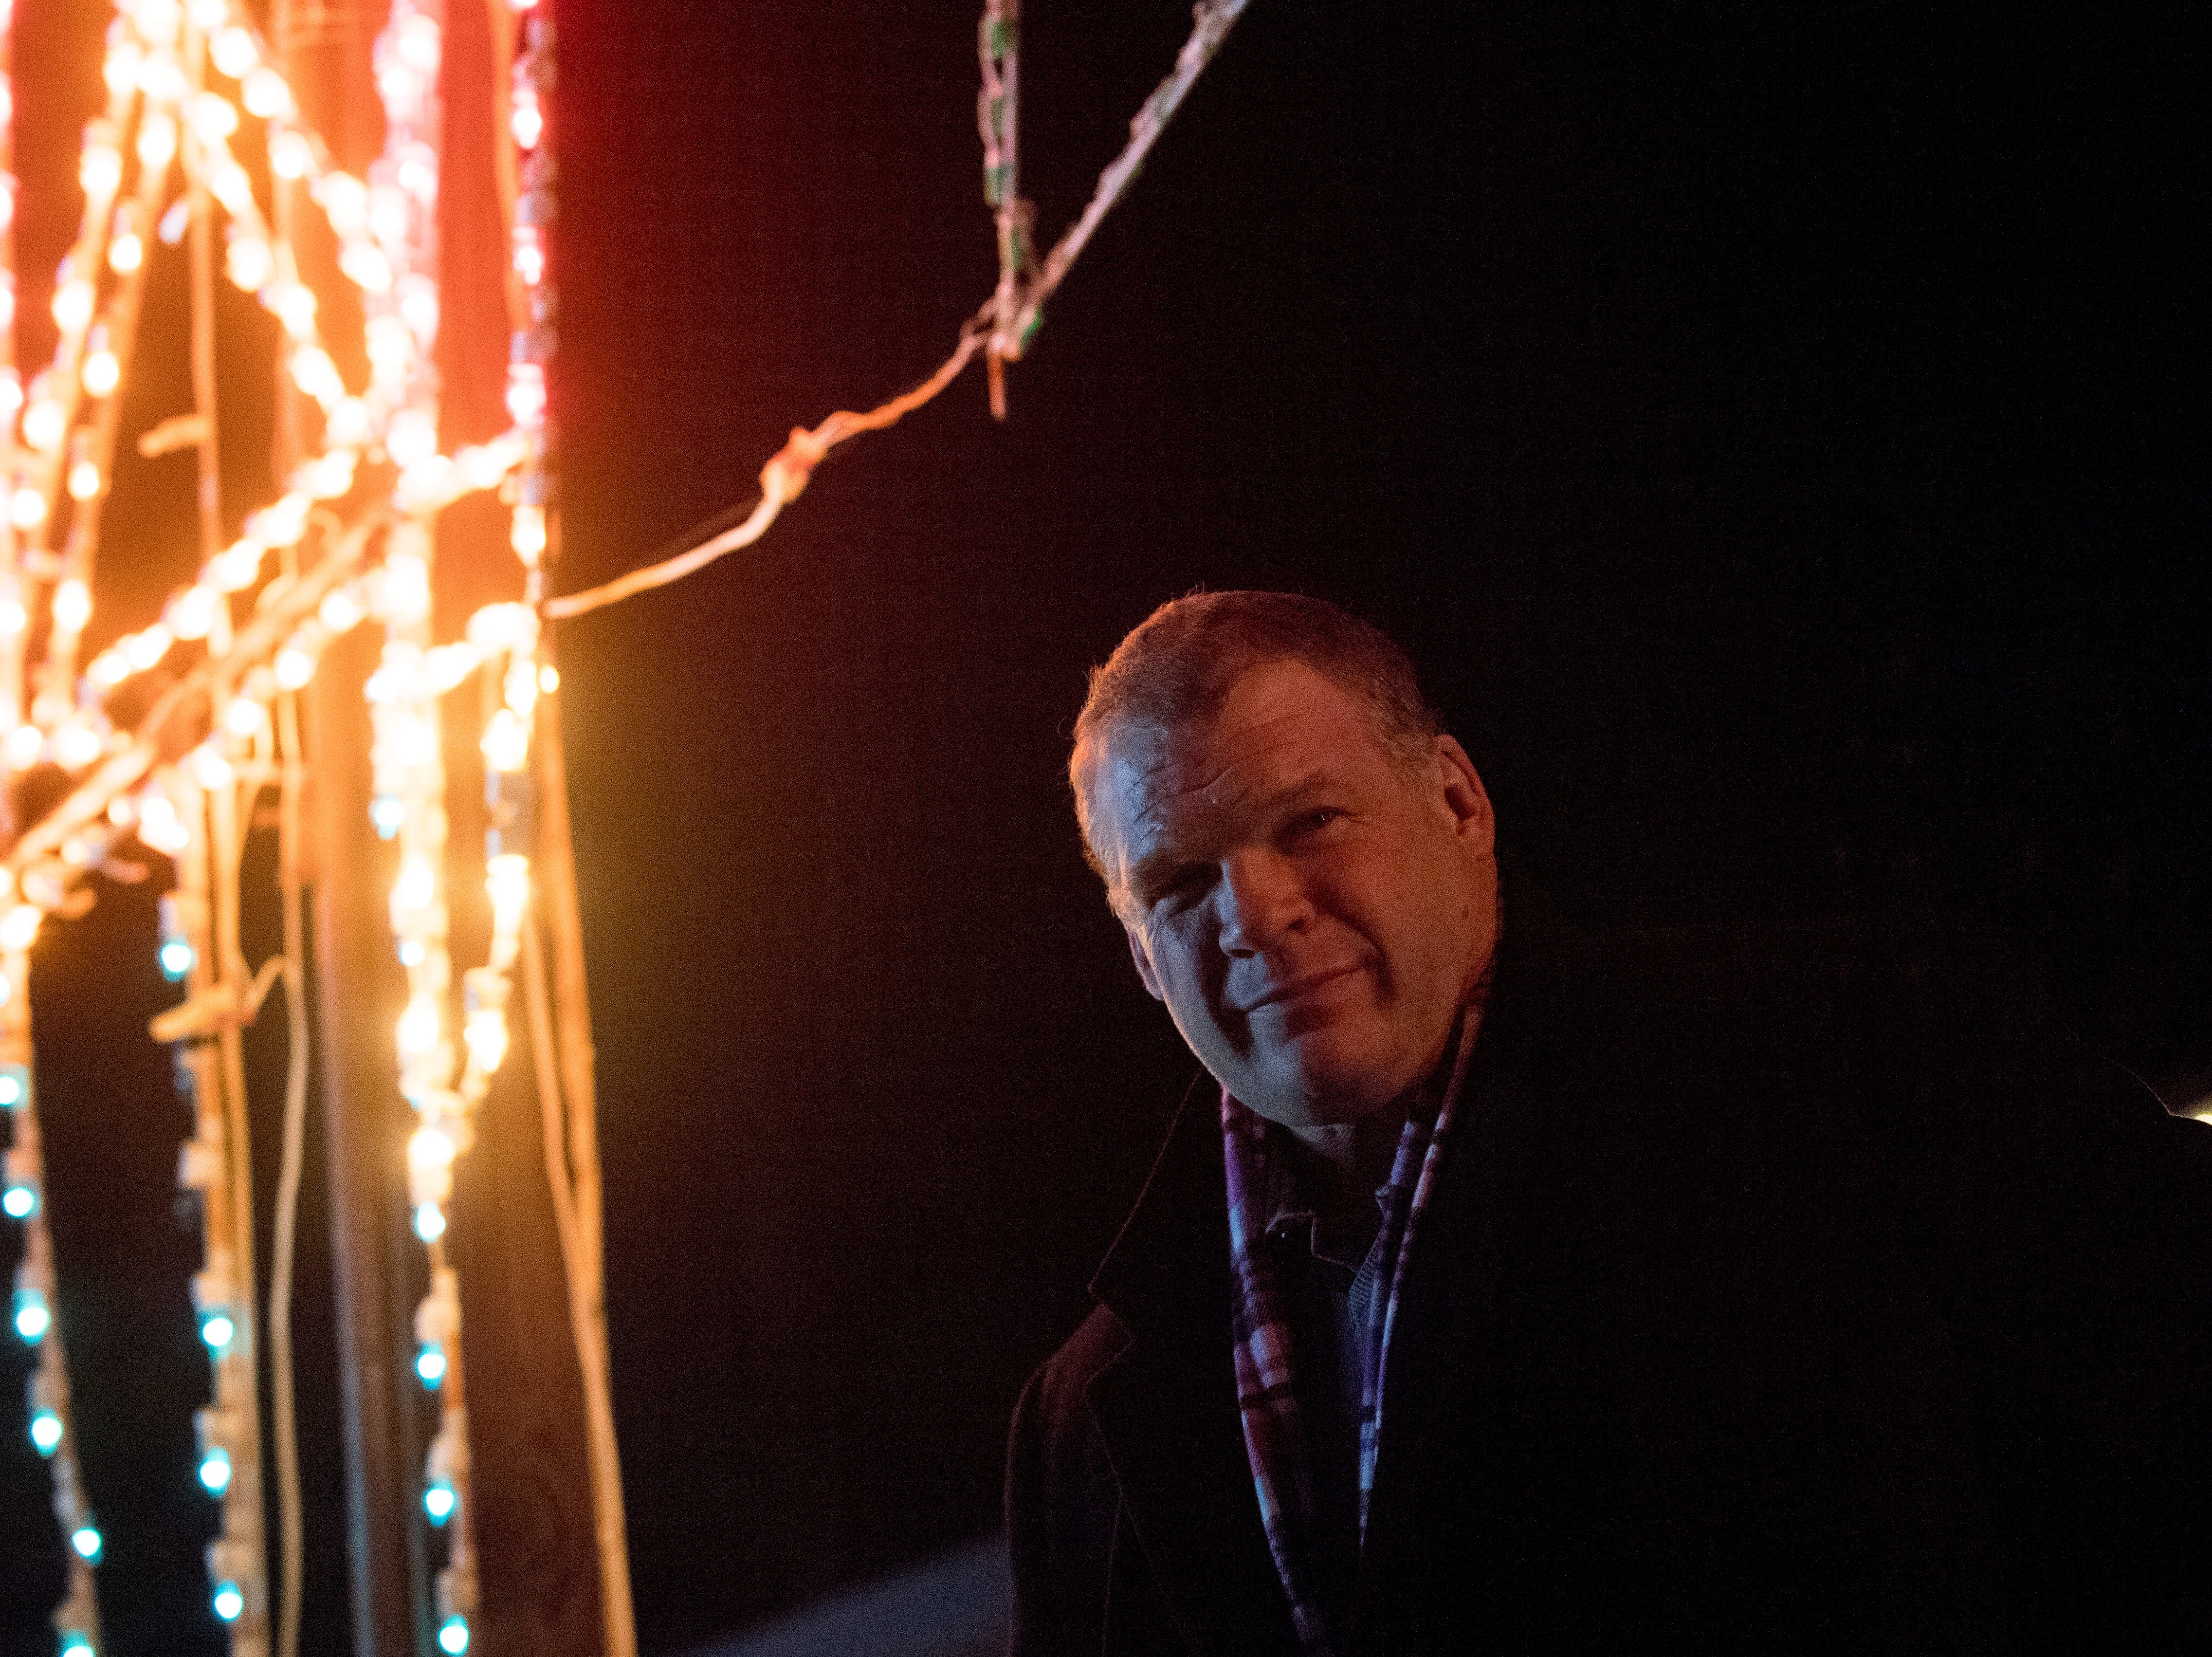 Knox County Mayor Glenn Jacobs attends the Knox CountyÕs 20th annual Holiday Festival of Lights will kick off at The Cove at Concord Park in Farragut, Tennessee on Friday, December 21, 2018. The family-friendly event is free and will run through Dec. 29 from 6 to 9 p.m., excluding Christmas Eve and Christmas Day.